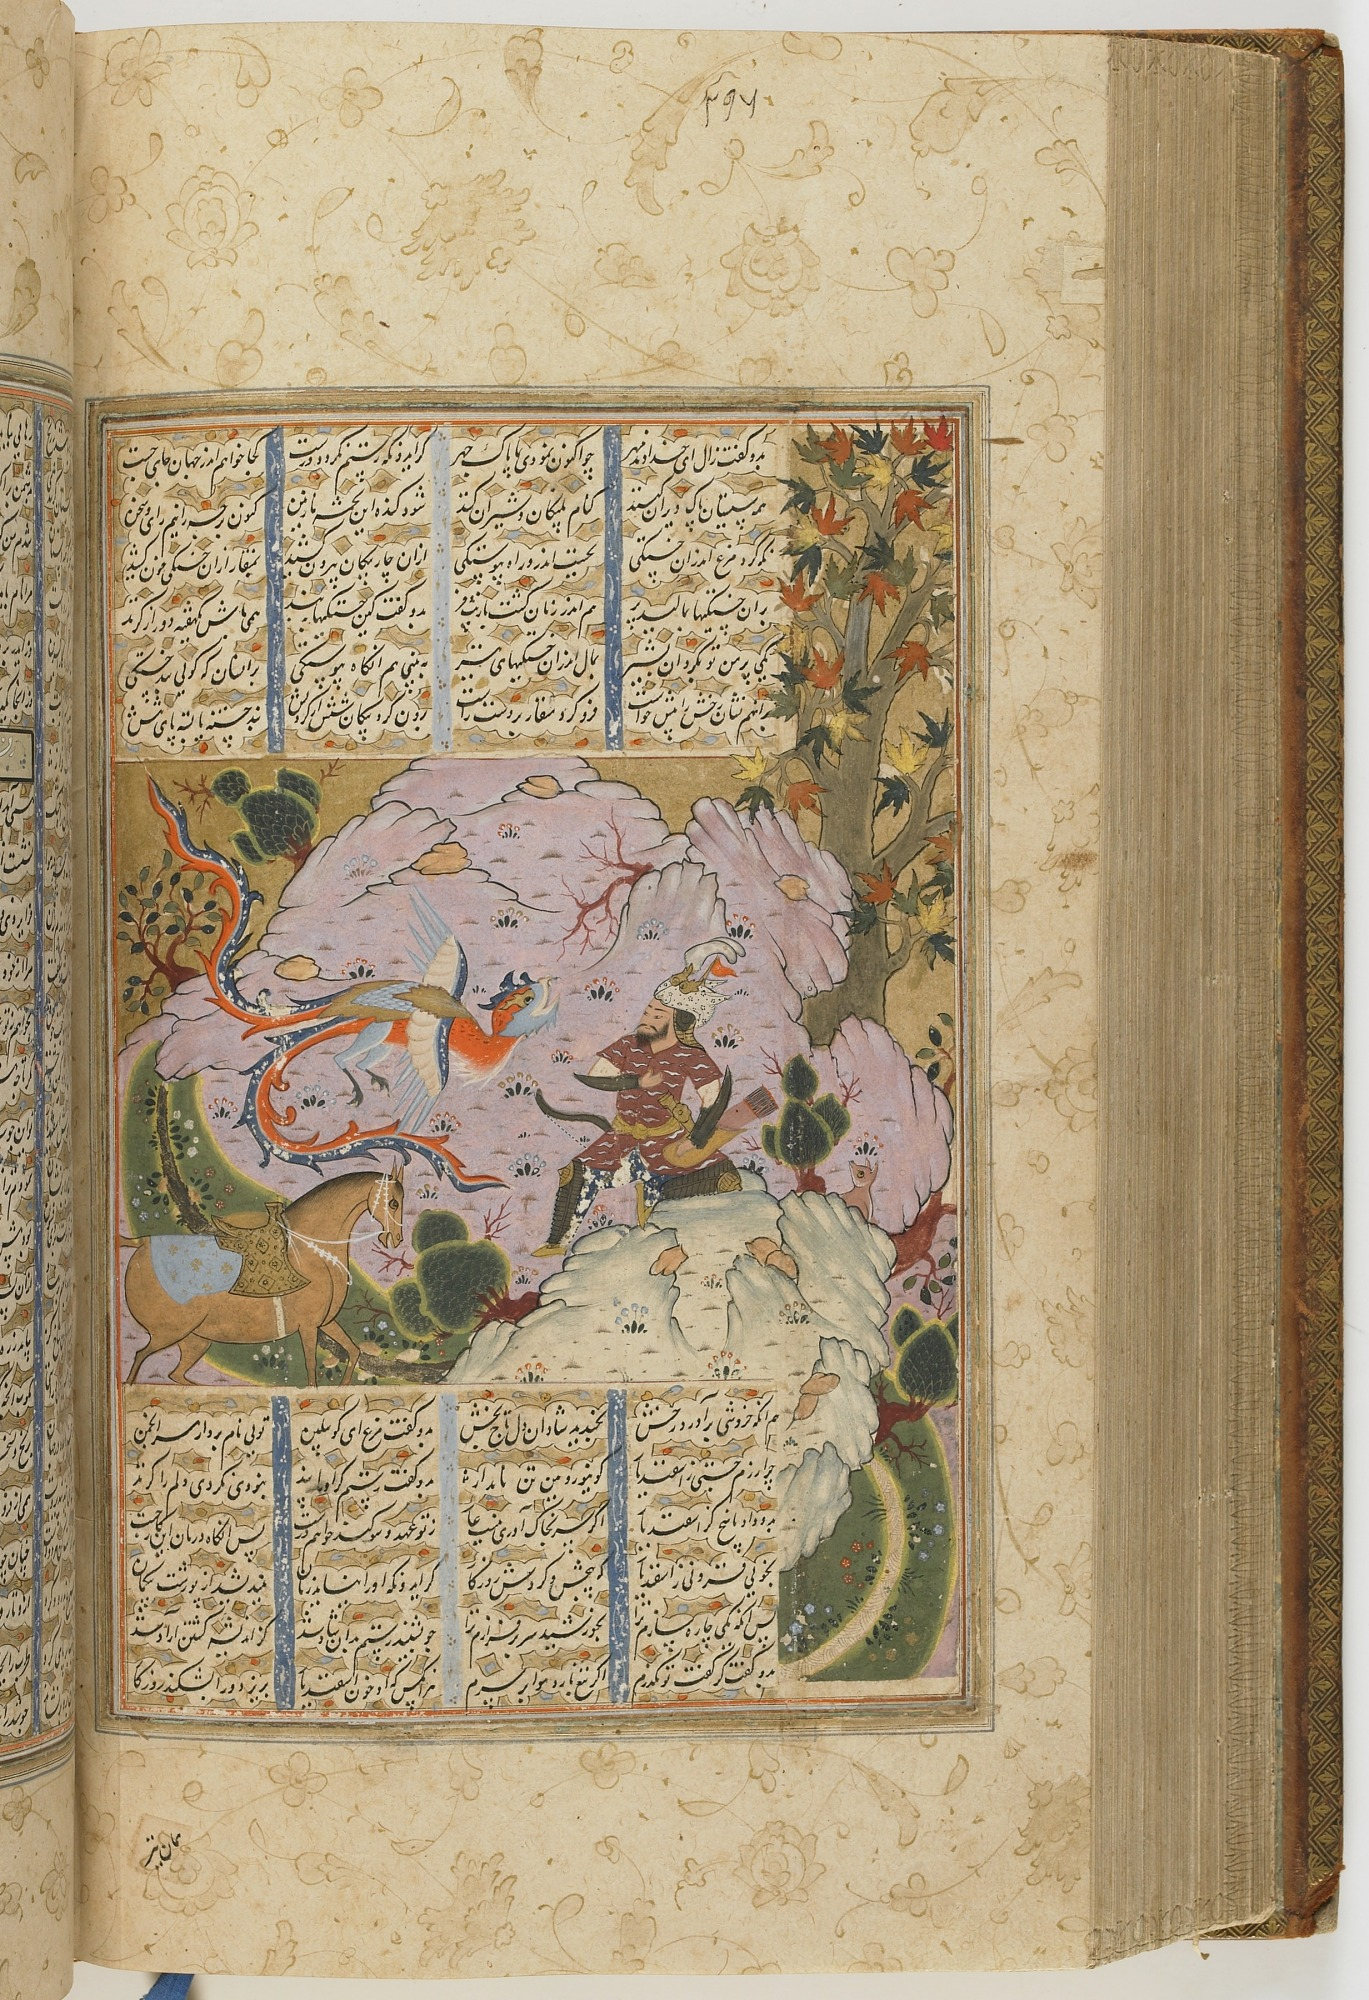 folio 297 verso: The Shahnama (Book of kings) by Firdausi (d. 1020)